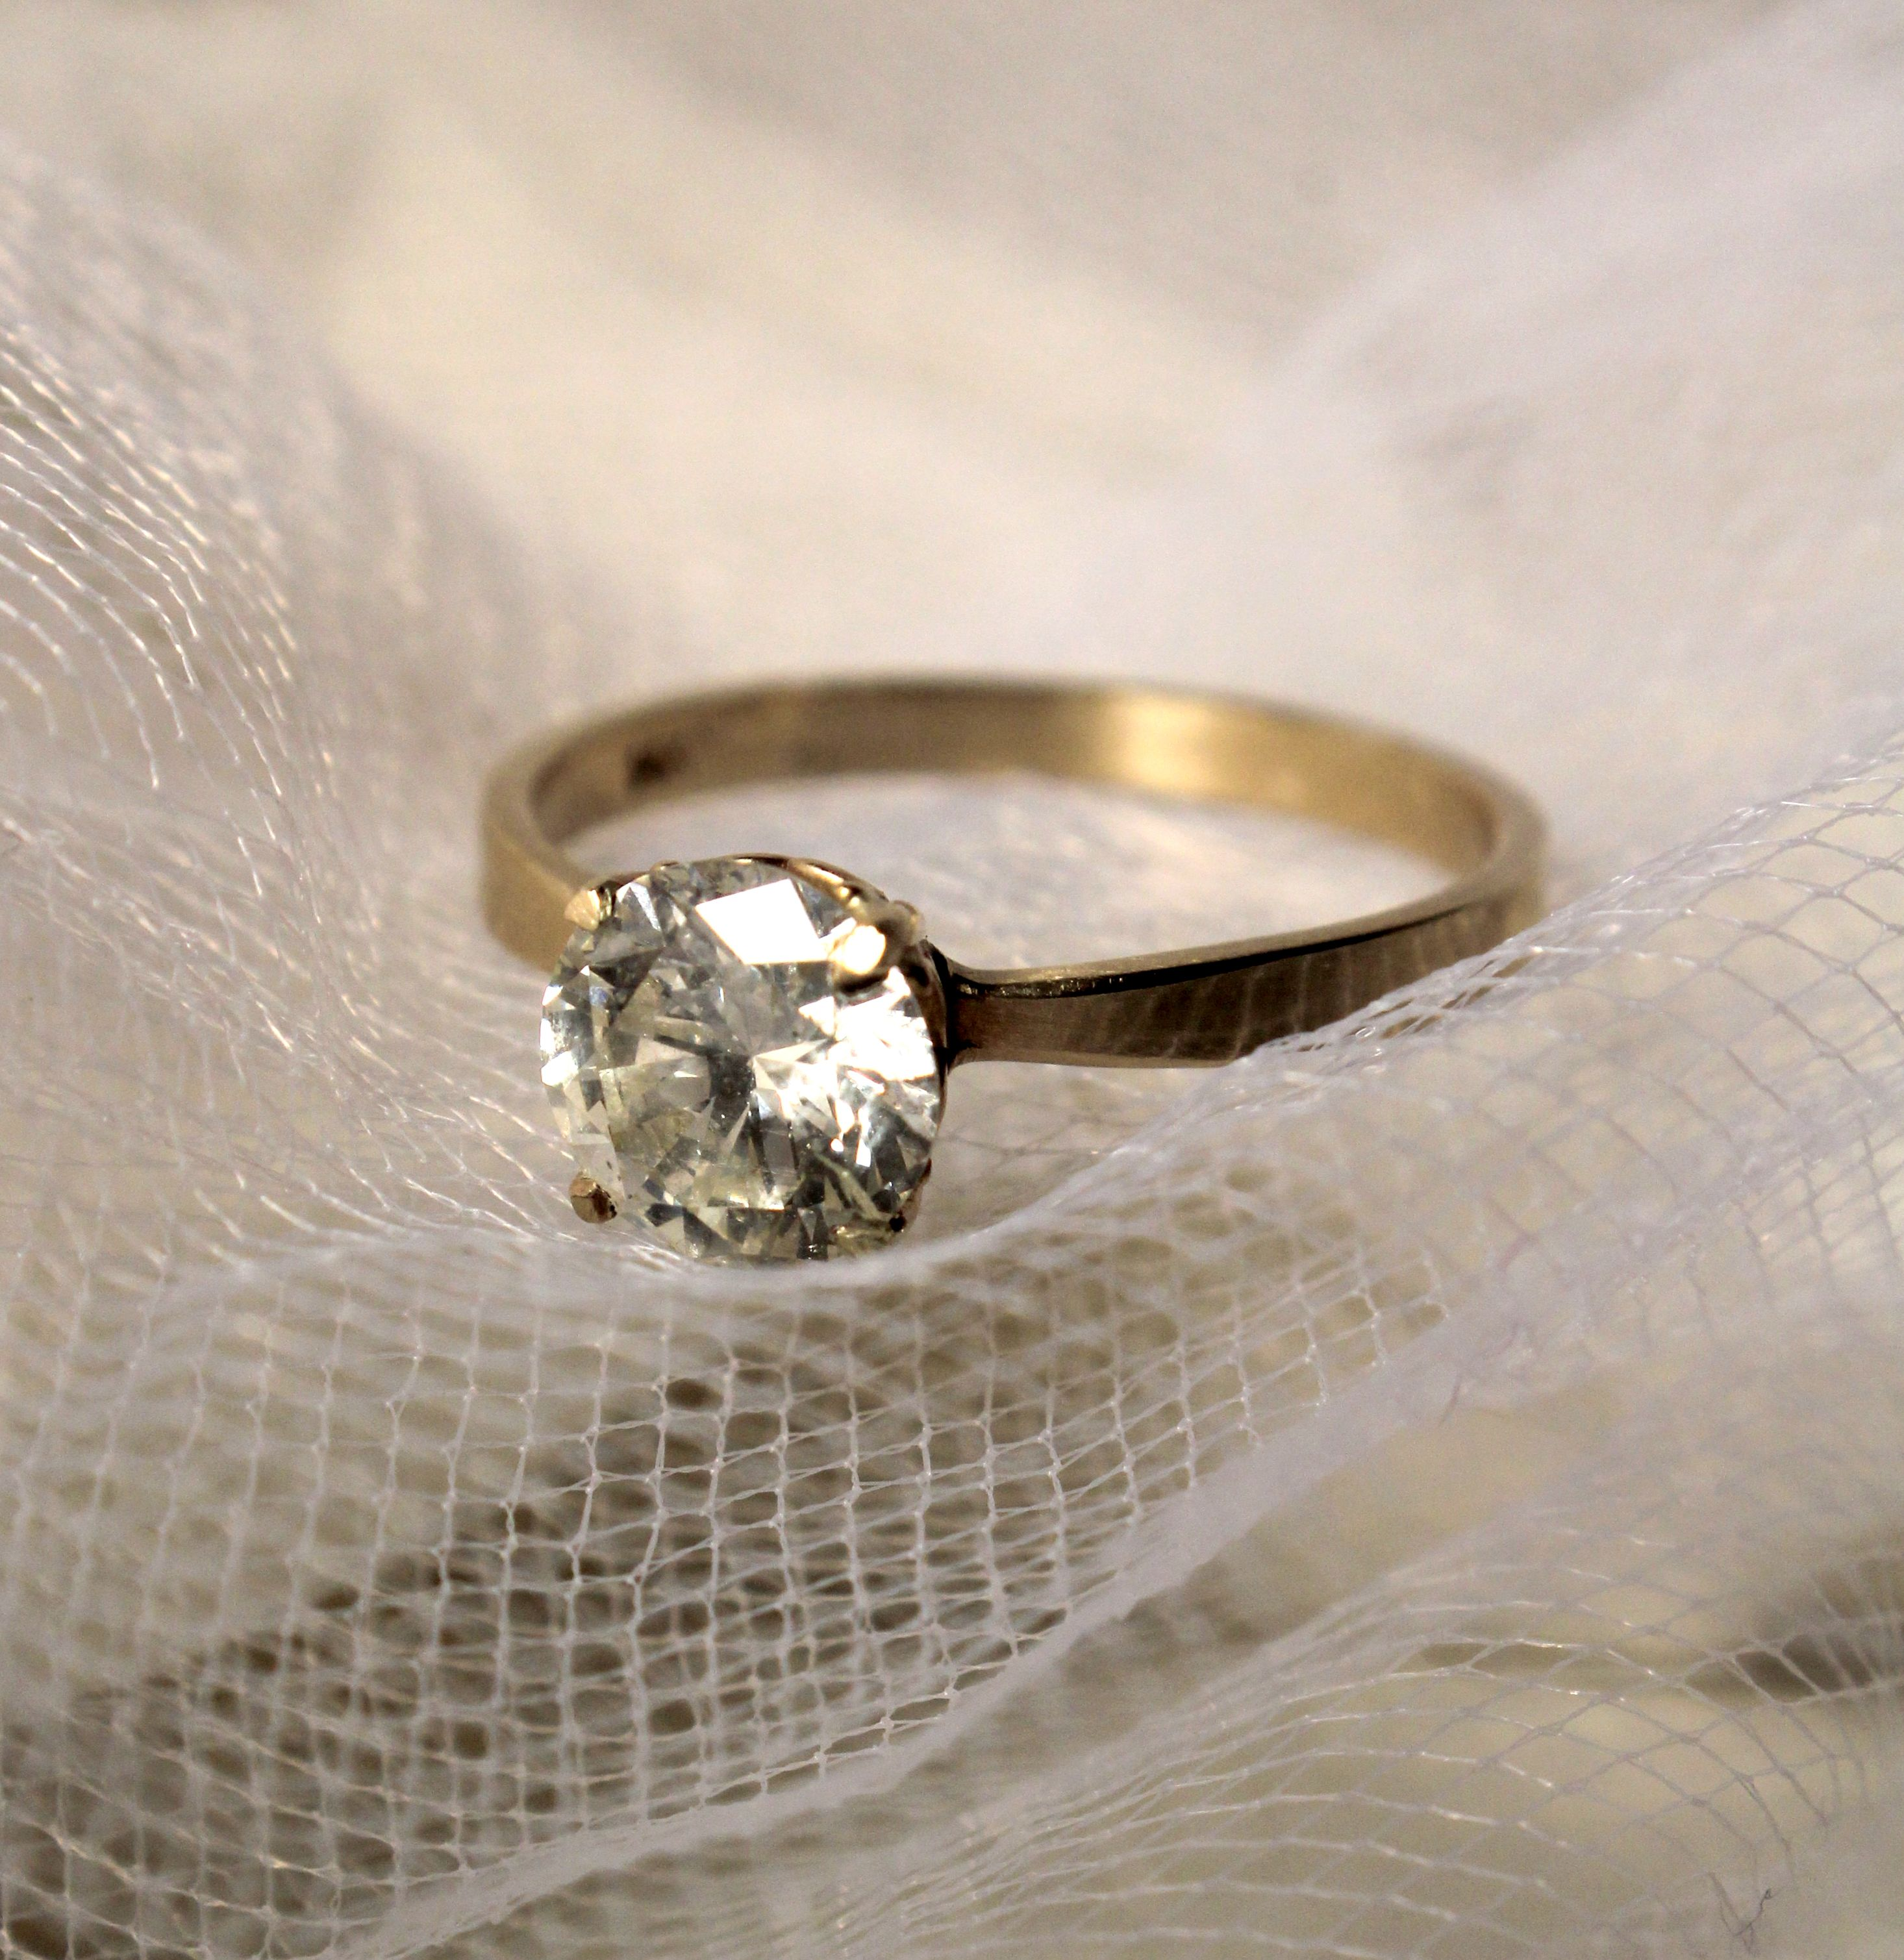 This Beautiful 1 Carat Diamond Is Mounted Onto A Simple Flat Gold